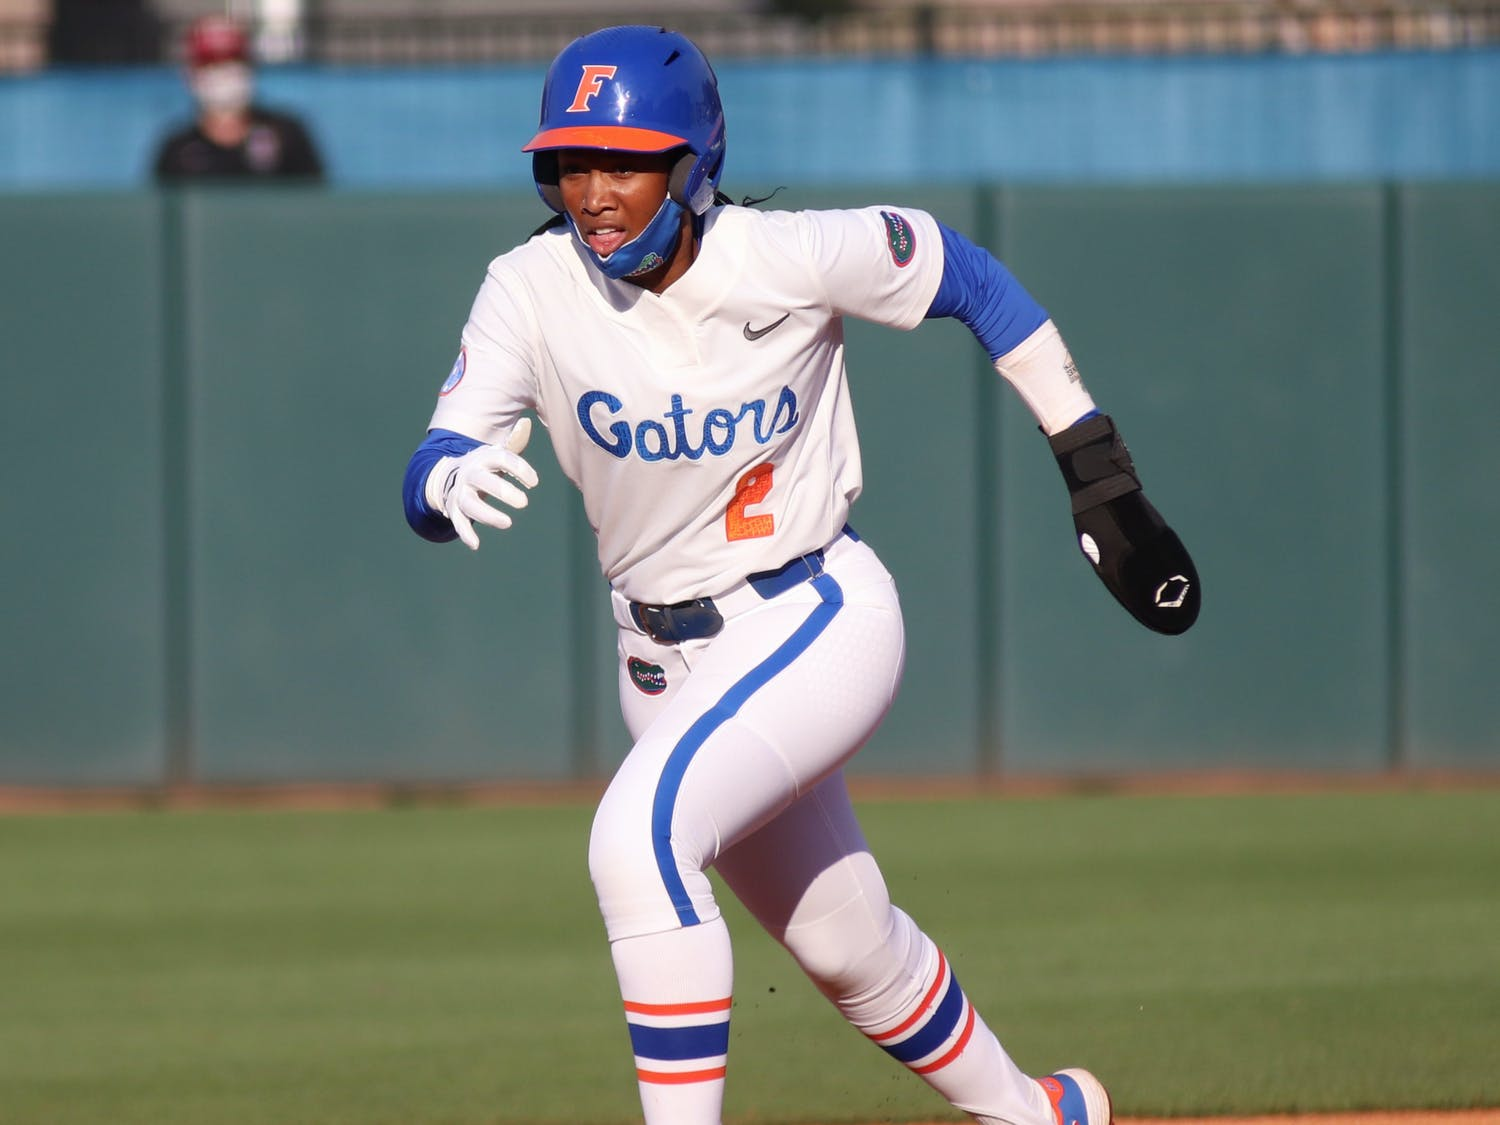 Five innings later, Echols knocked in UF's last run of the day and scored Cheyenne Lindsey on a walk. Photo from UF-FSU game March 3.